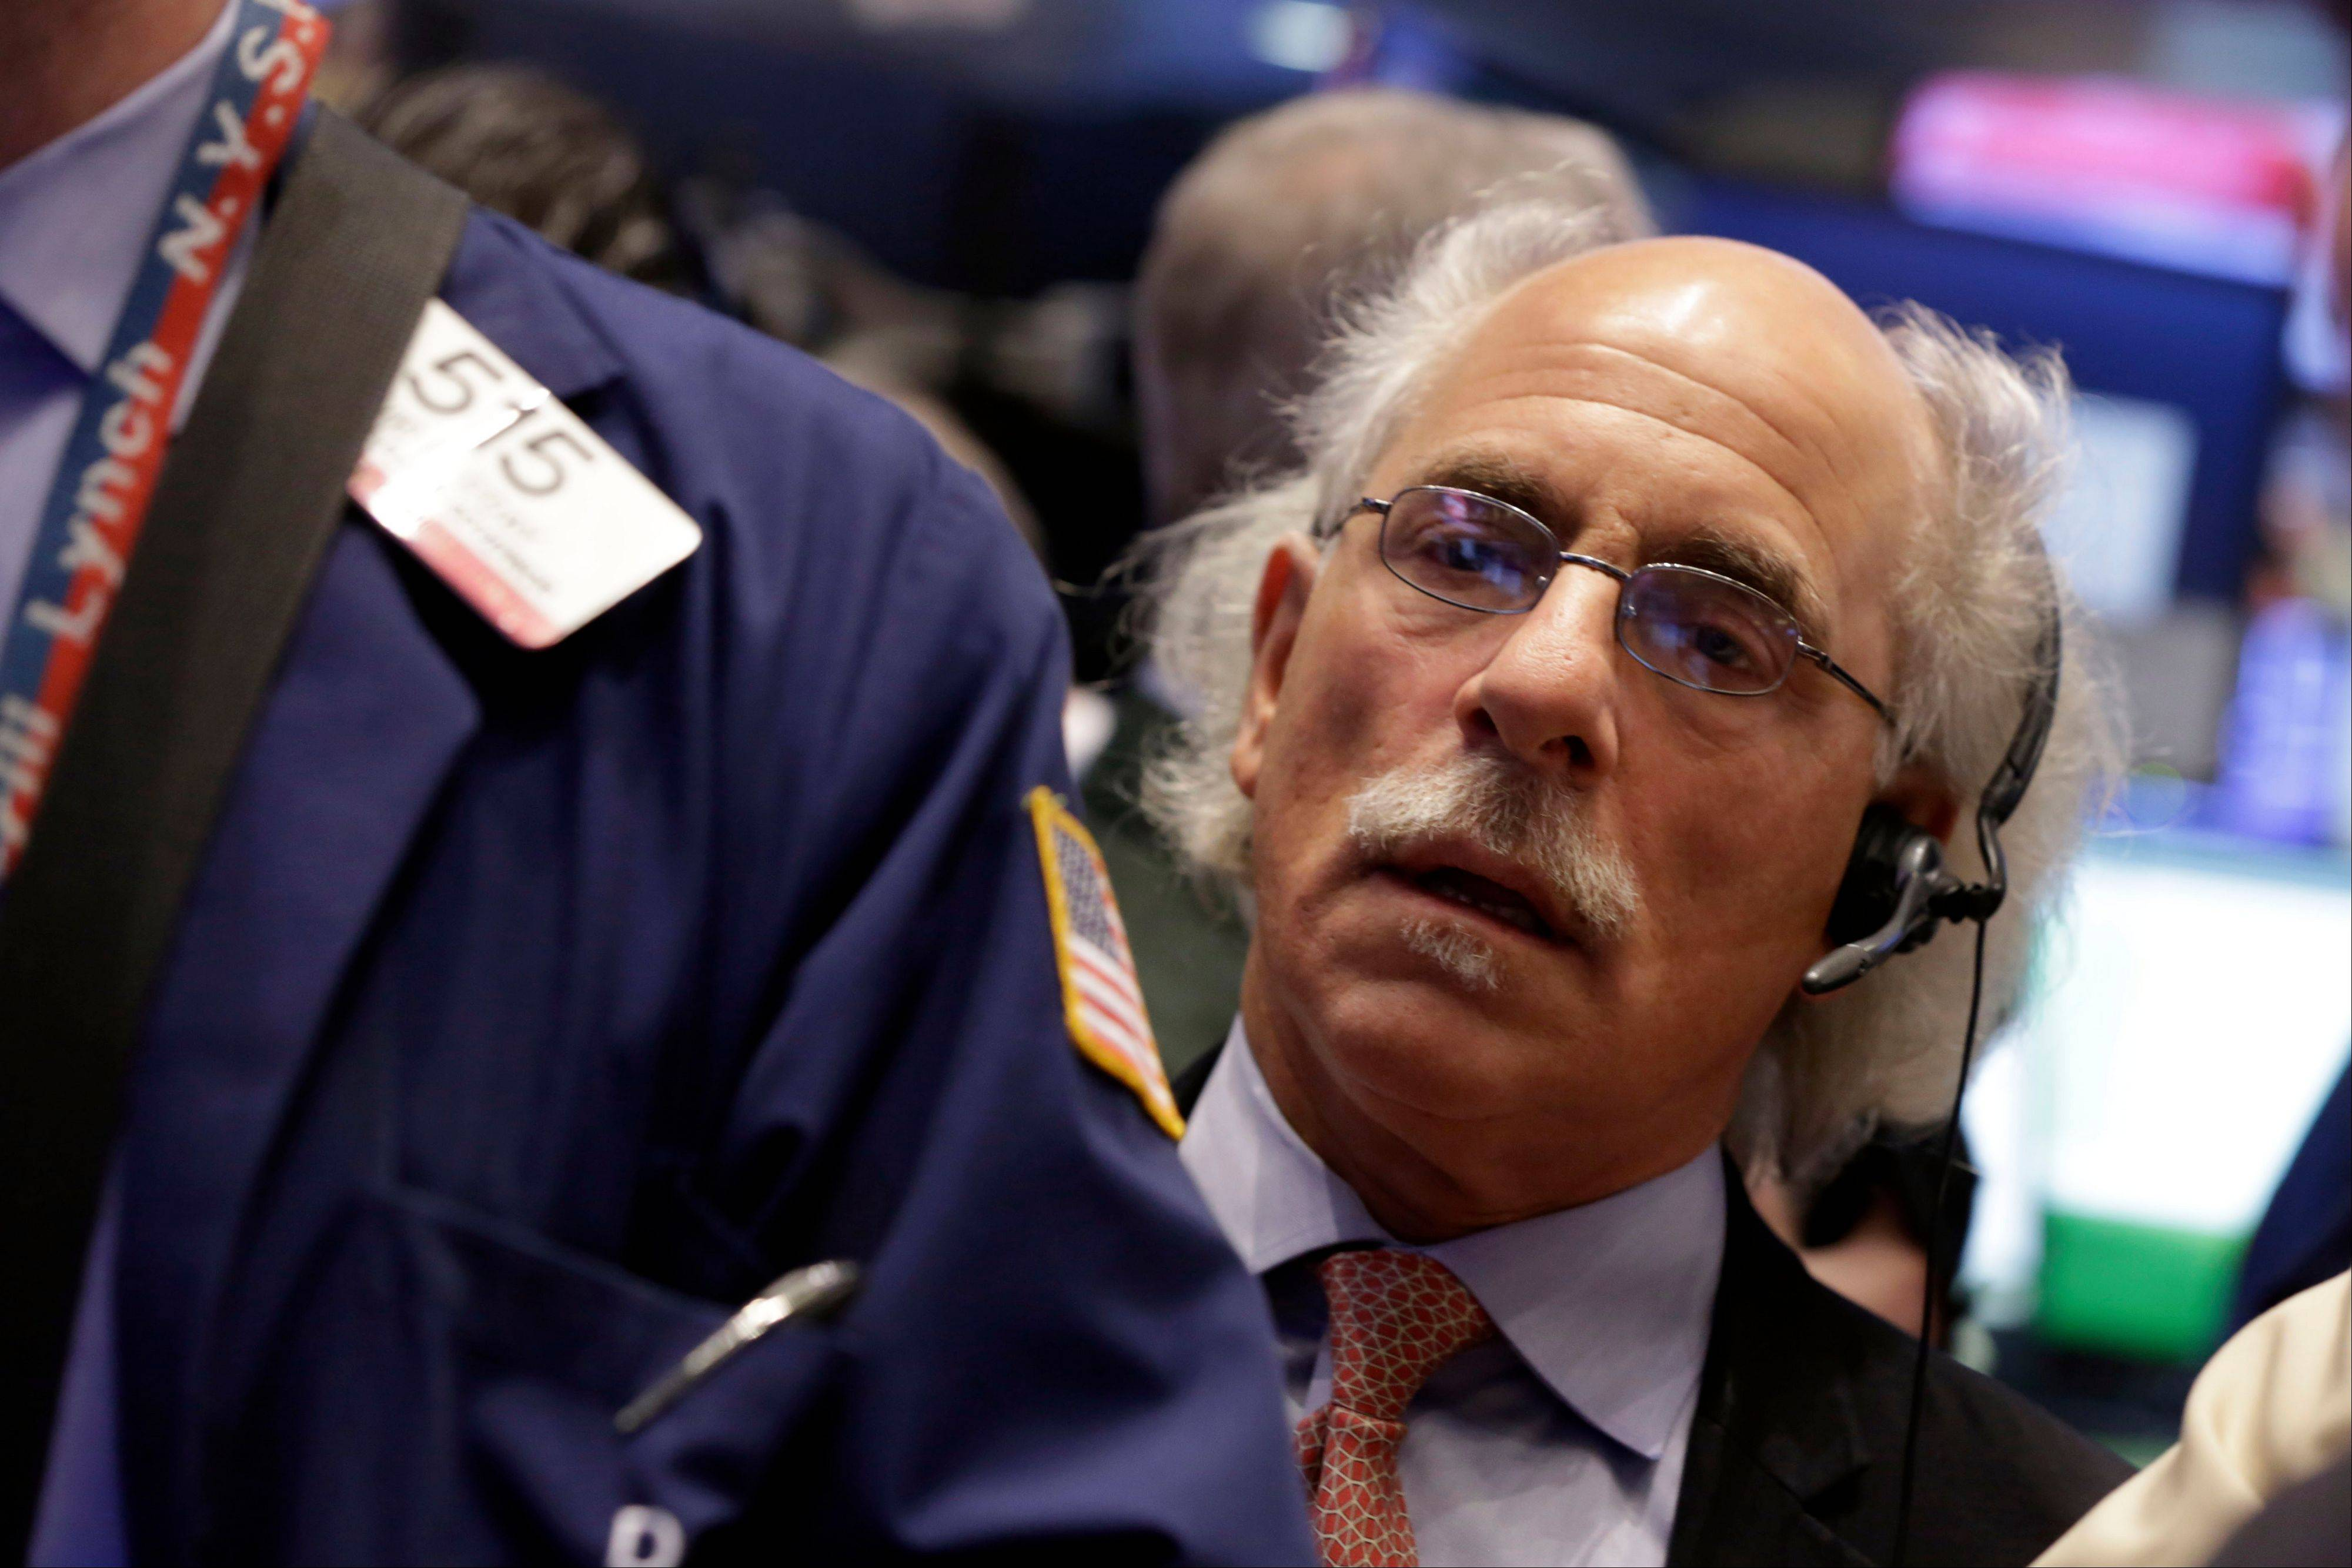 Stocks were little changed Monday, after the Standard & Poor�s 500 Index reached an all-time high last week and headed toward its biggest annual gain since 1997.